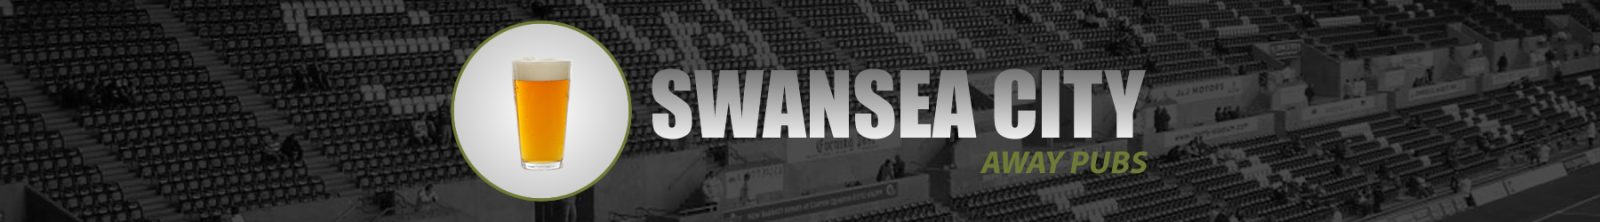 Swansea City Away Pubs